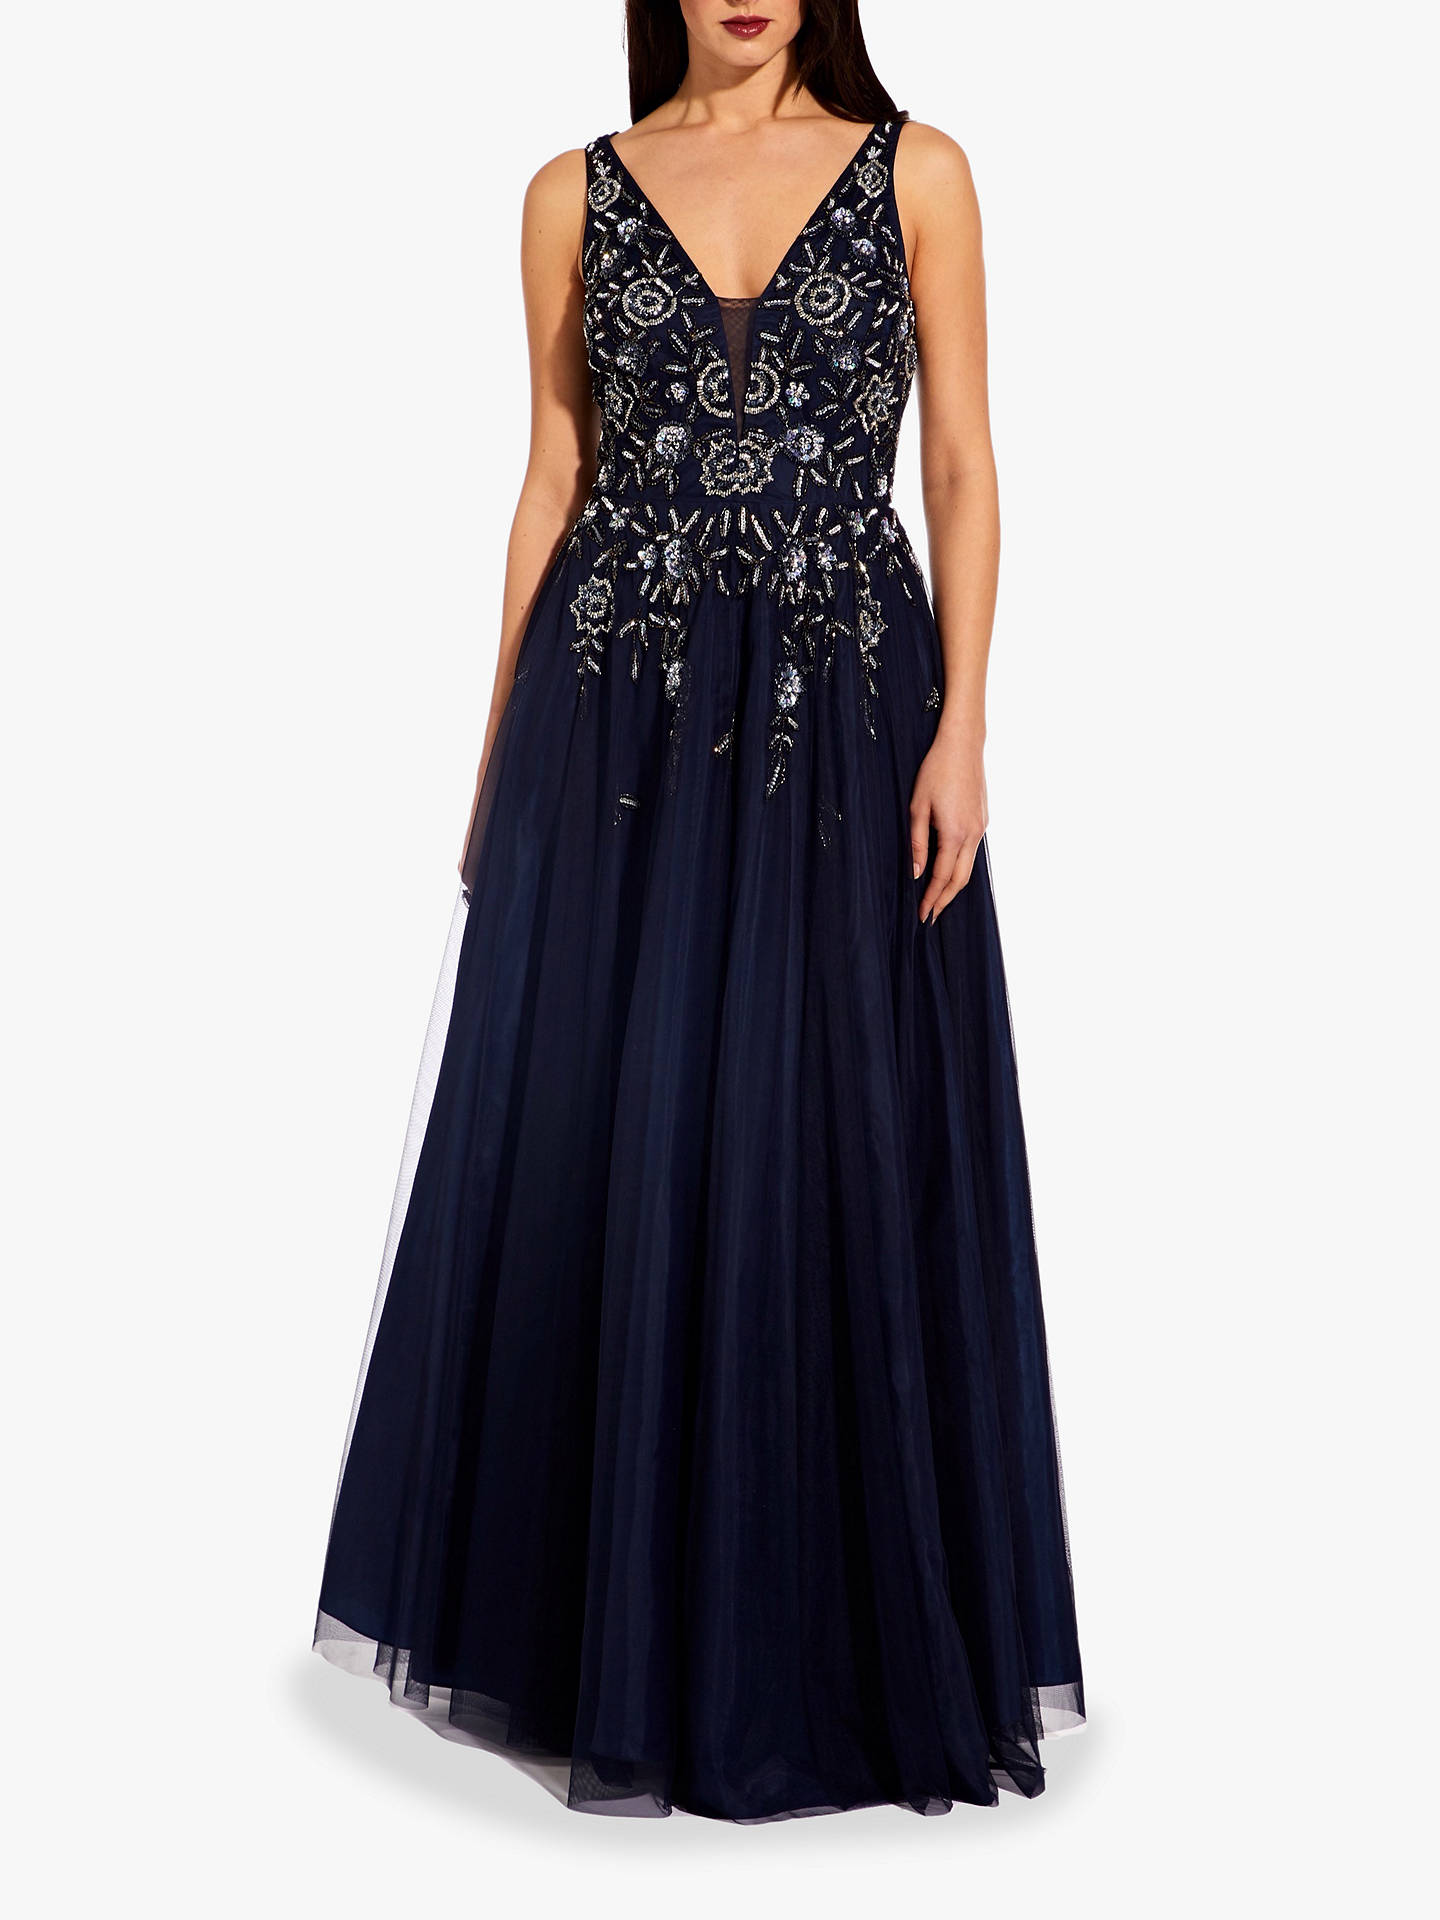 Buy Adrianna Papell Beaded Mesh Maxi Dress, Navy, 6 Online at johnlewis.com